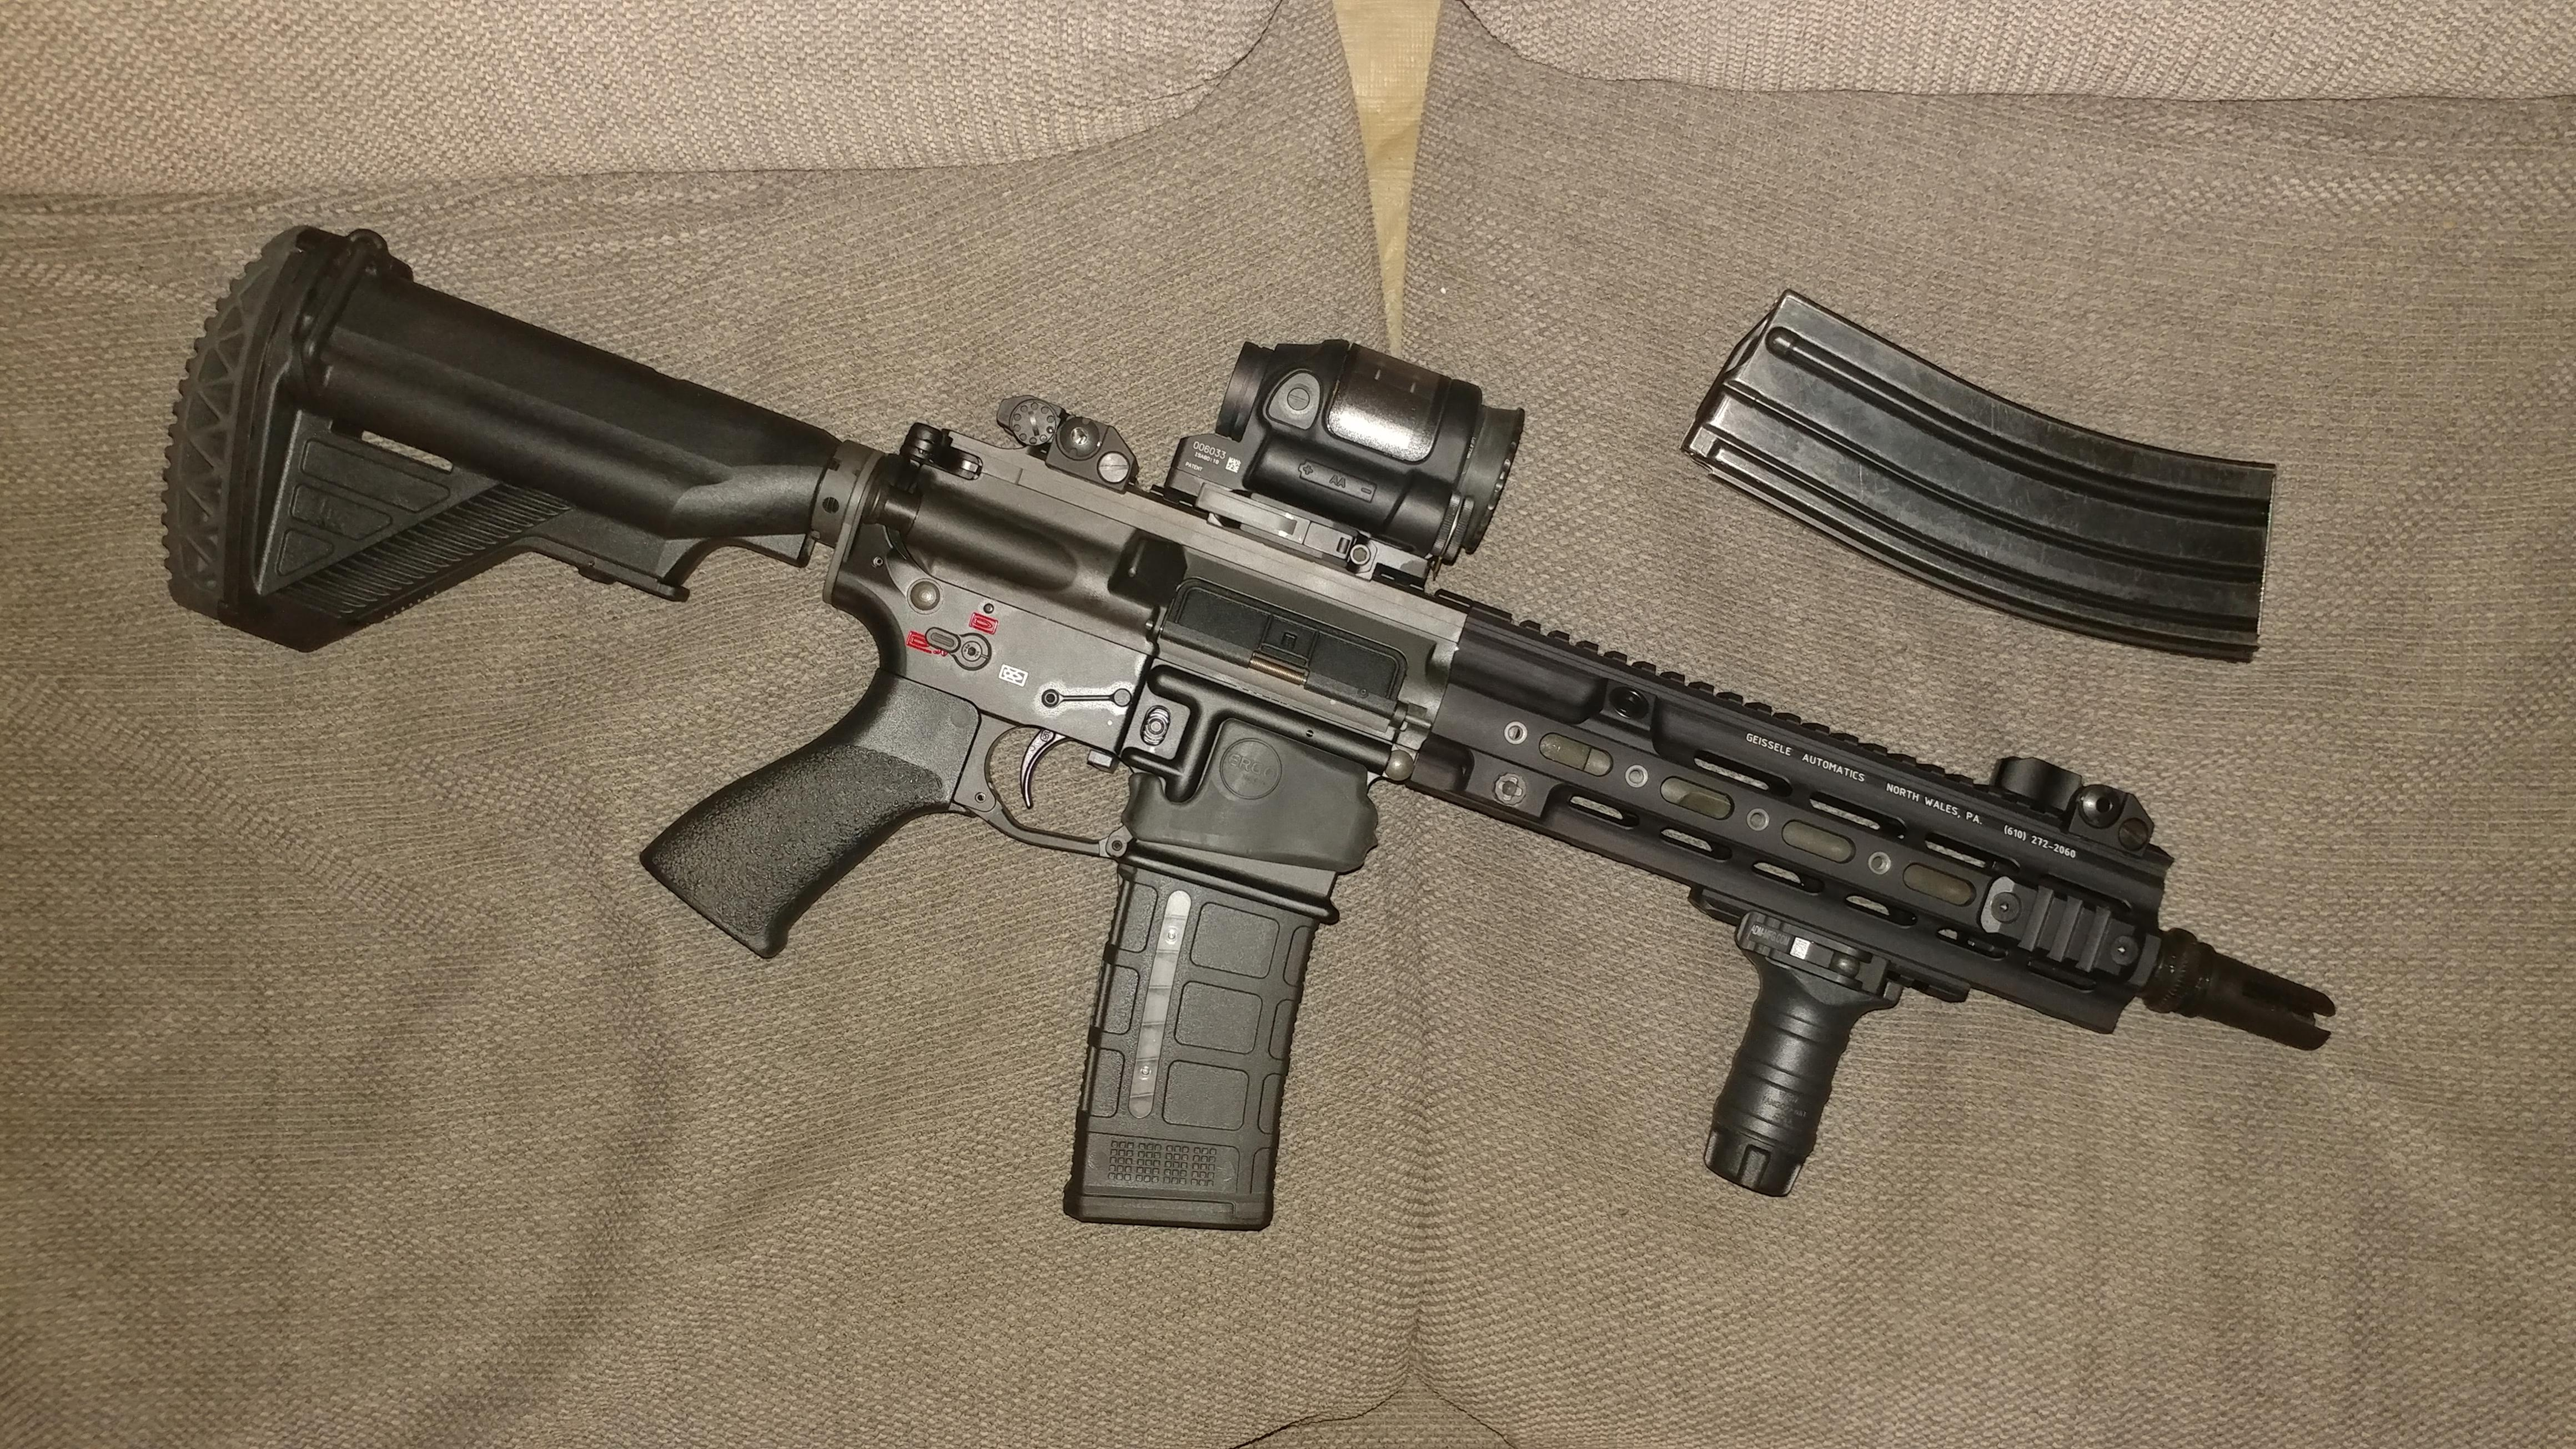 HK416 Owners Picture Thread (genuine HK416's only please)-20180504_033926.jpg